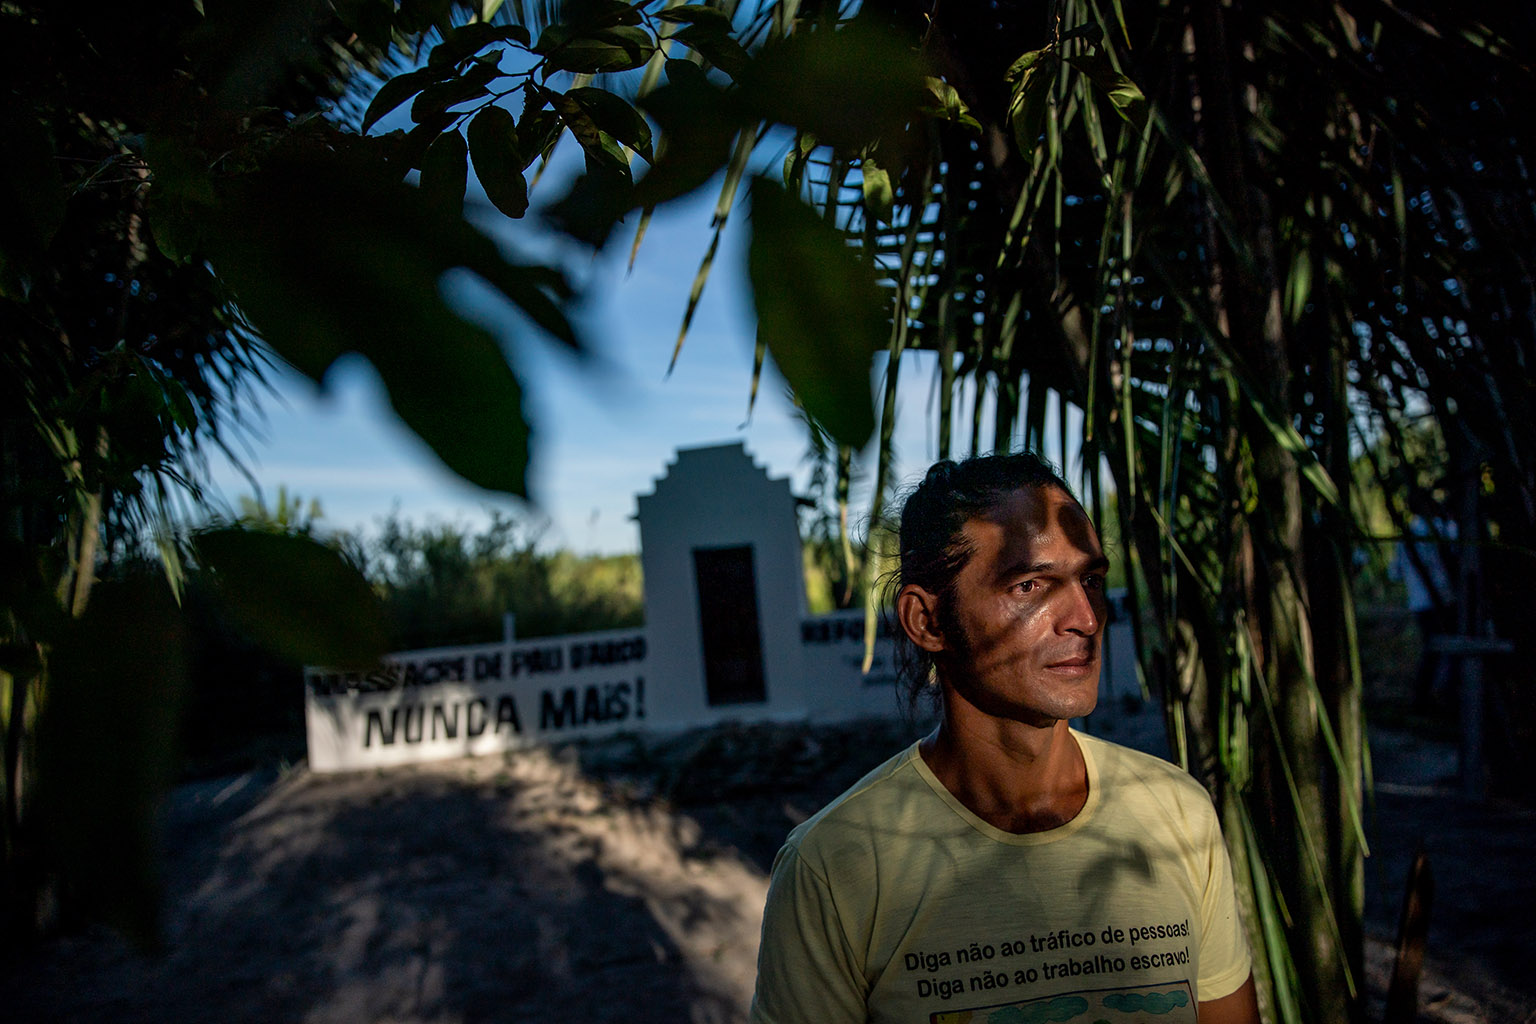 Fernando Araújo poses for a photograph on Sunday, June 9, 2019 at the site of a 2017 massacre of rural workers in Pau D'Arco, Brazil. Fernando survived after hiding in the brush while ten other workers were killed.